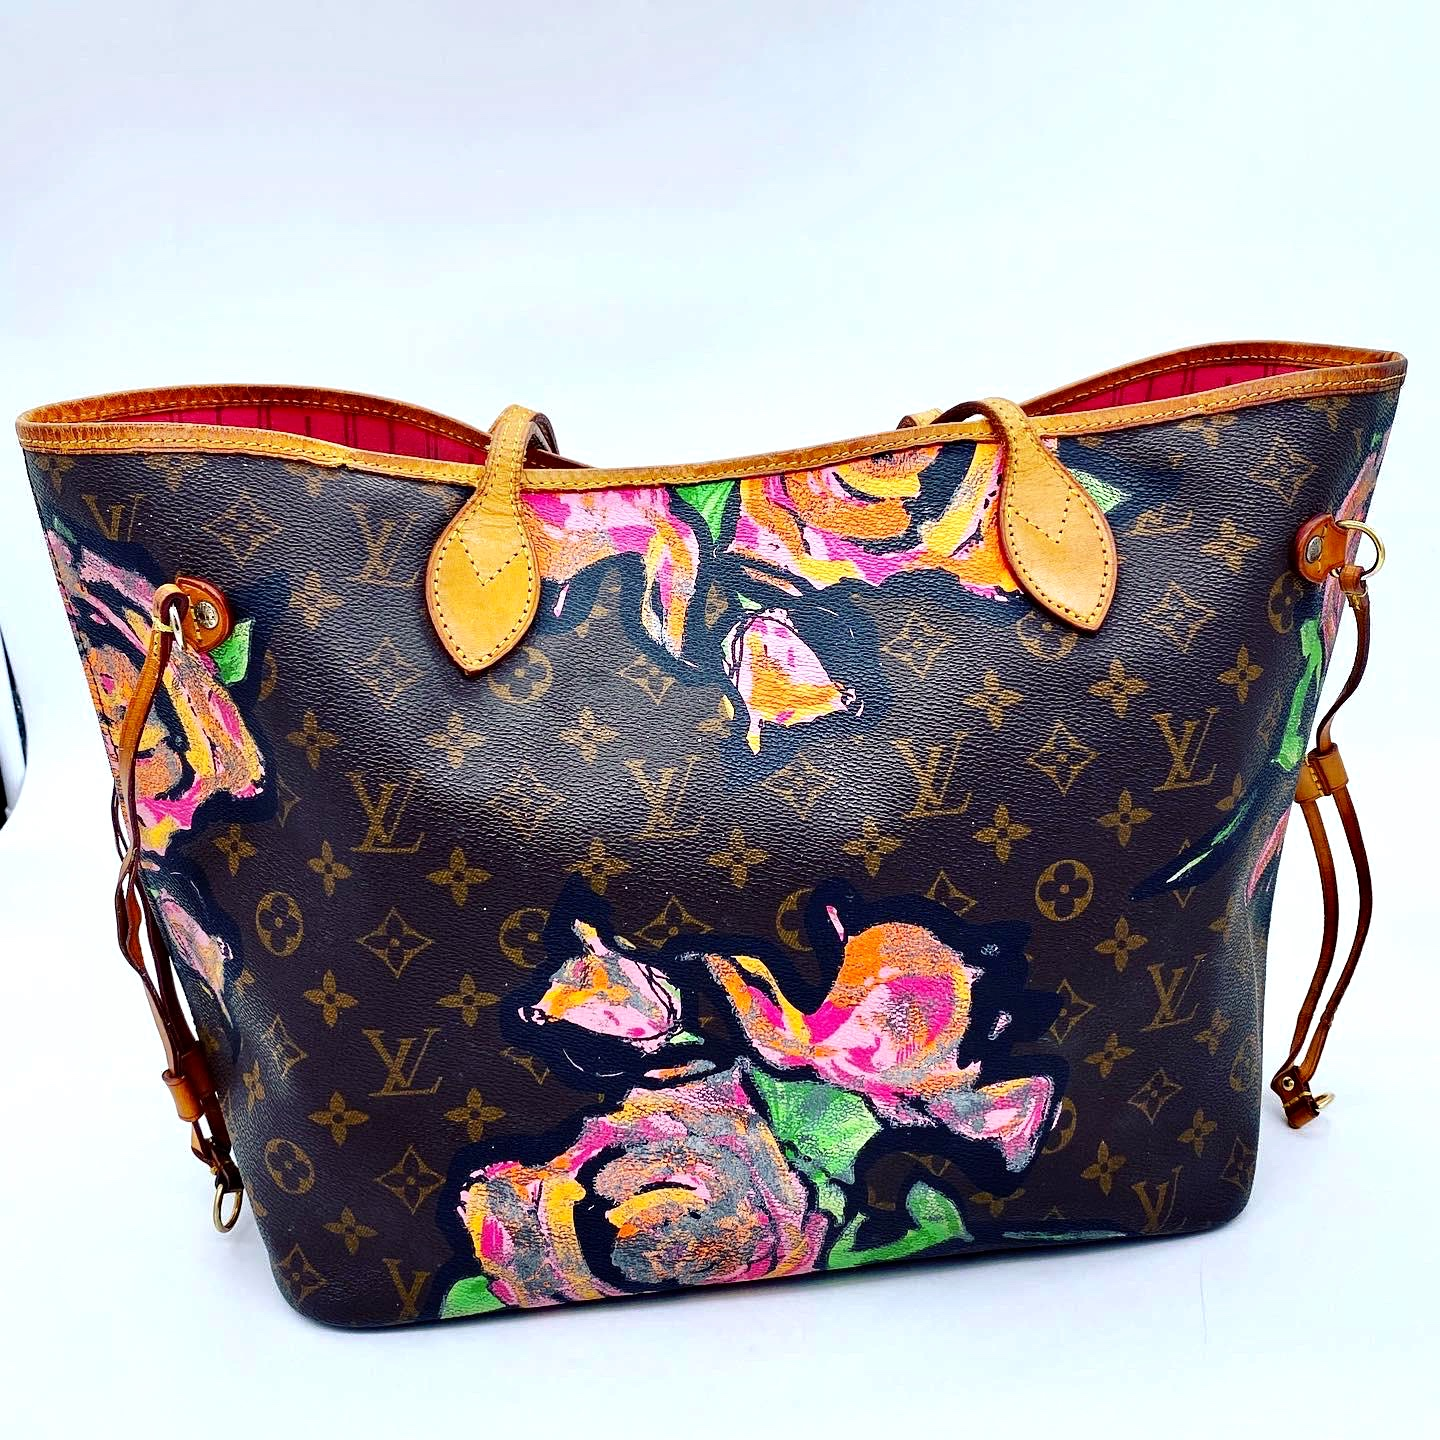 Neverfull Ed.limitada